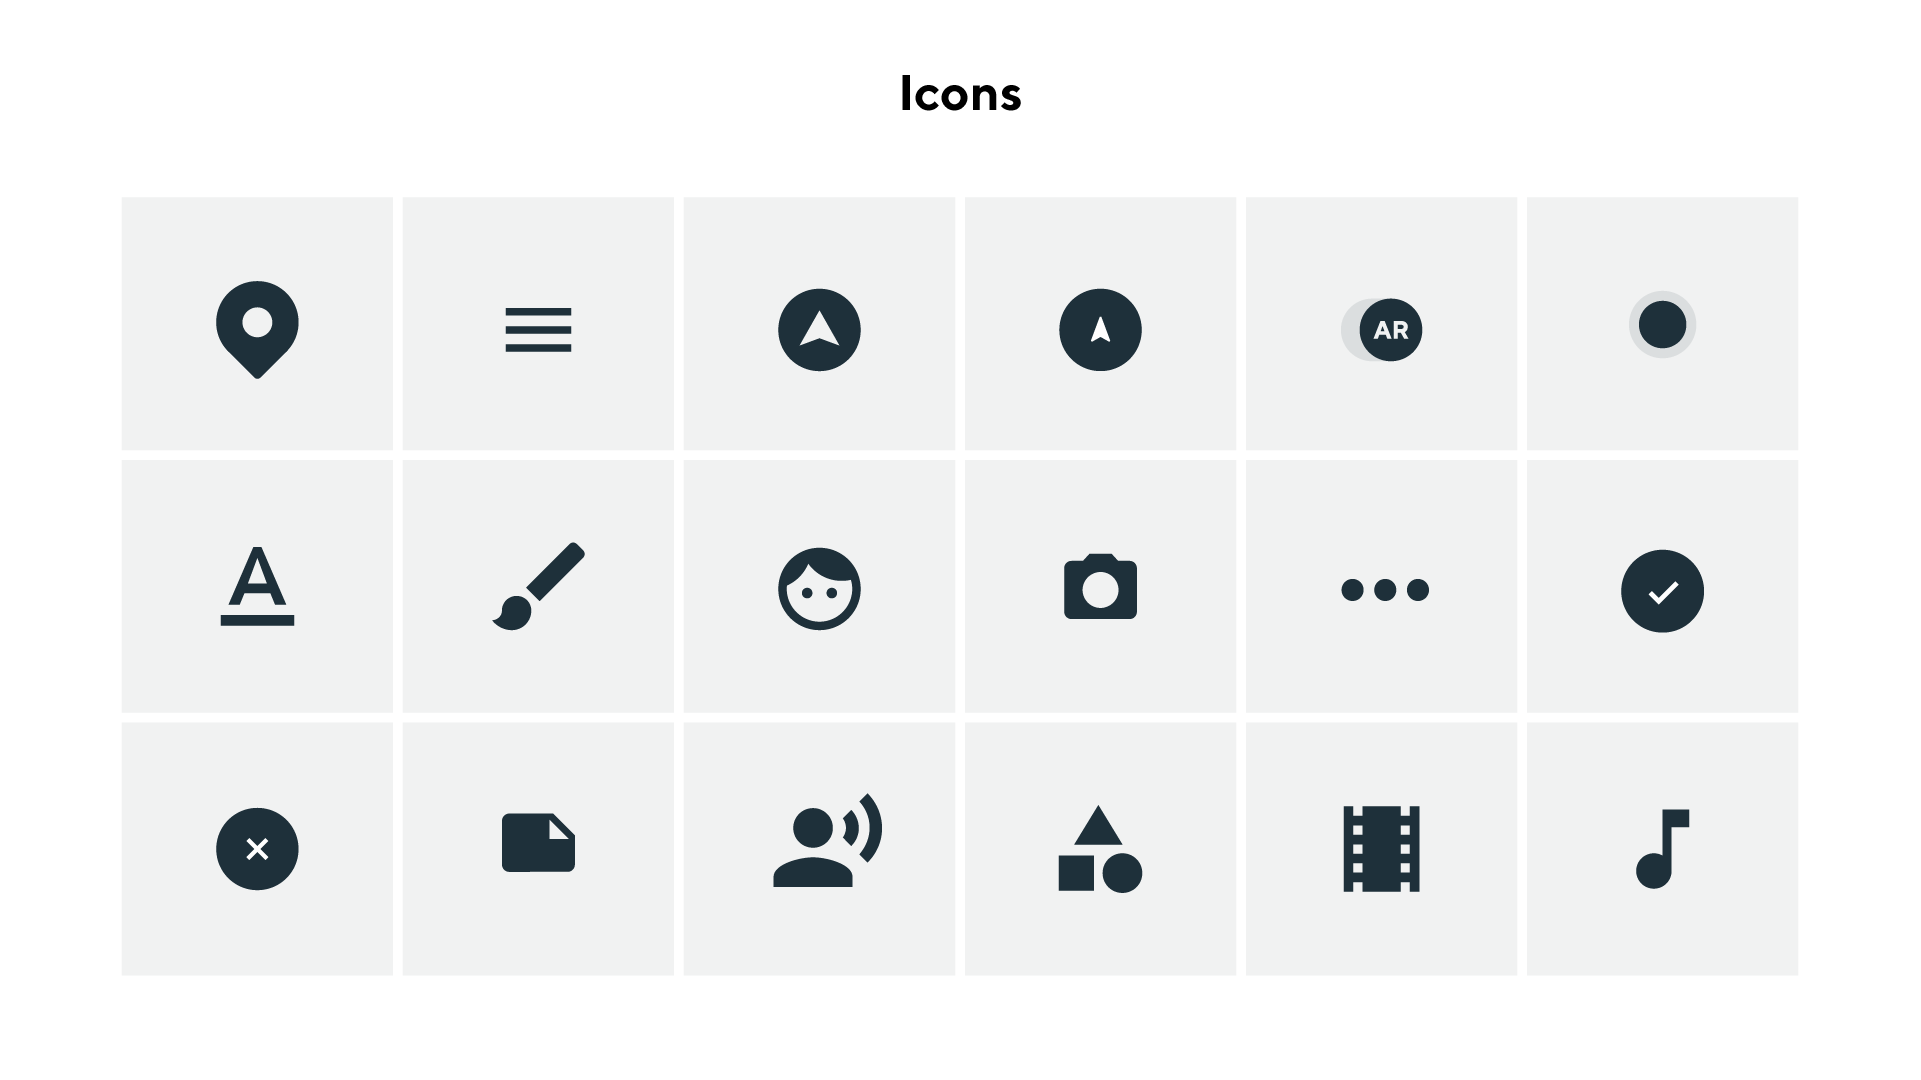 Note: Some icons created by Google's open source icon database.